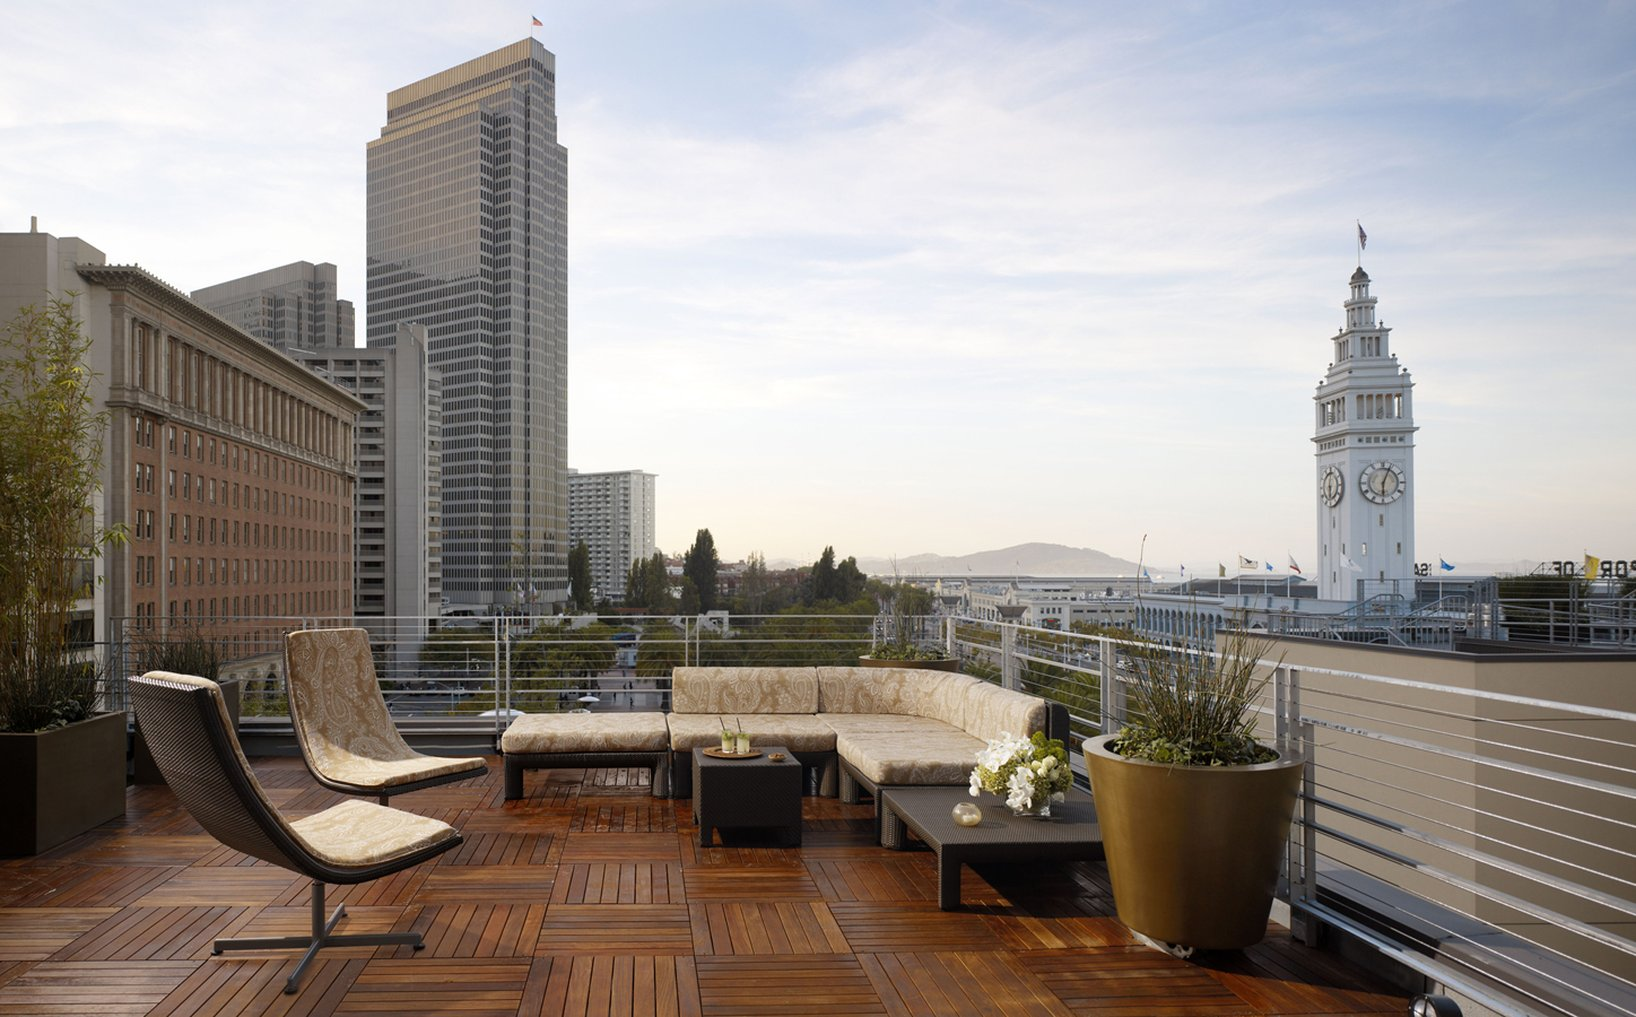 10 West Coast Hotels With Rooftop Bars Perfect For Summer